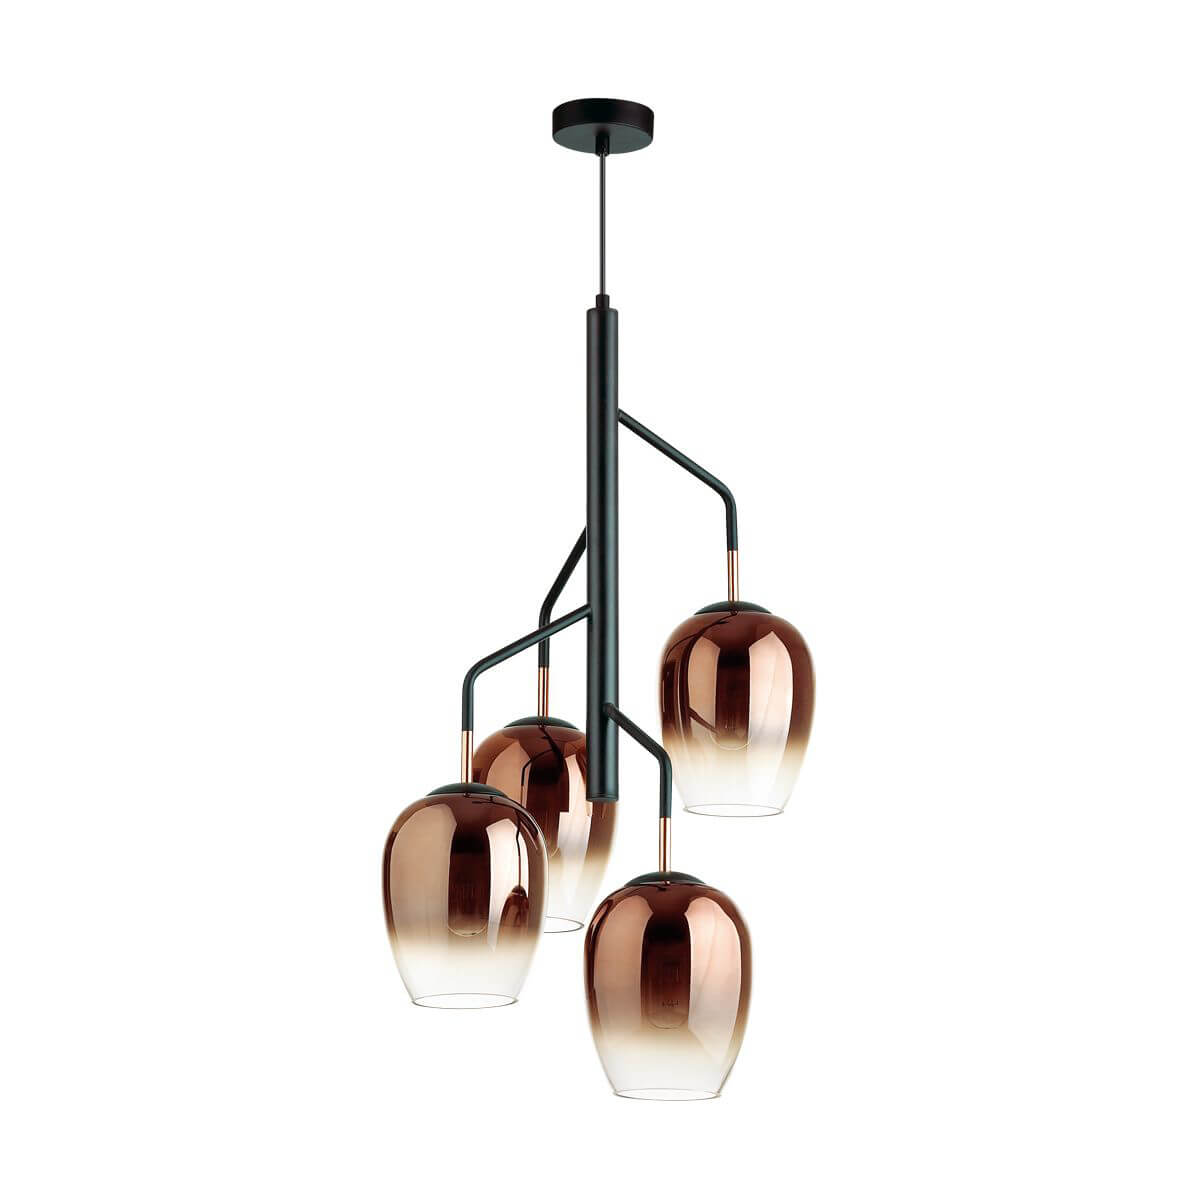 Люстра Odeon Light 4760/4 Modern